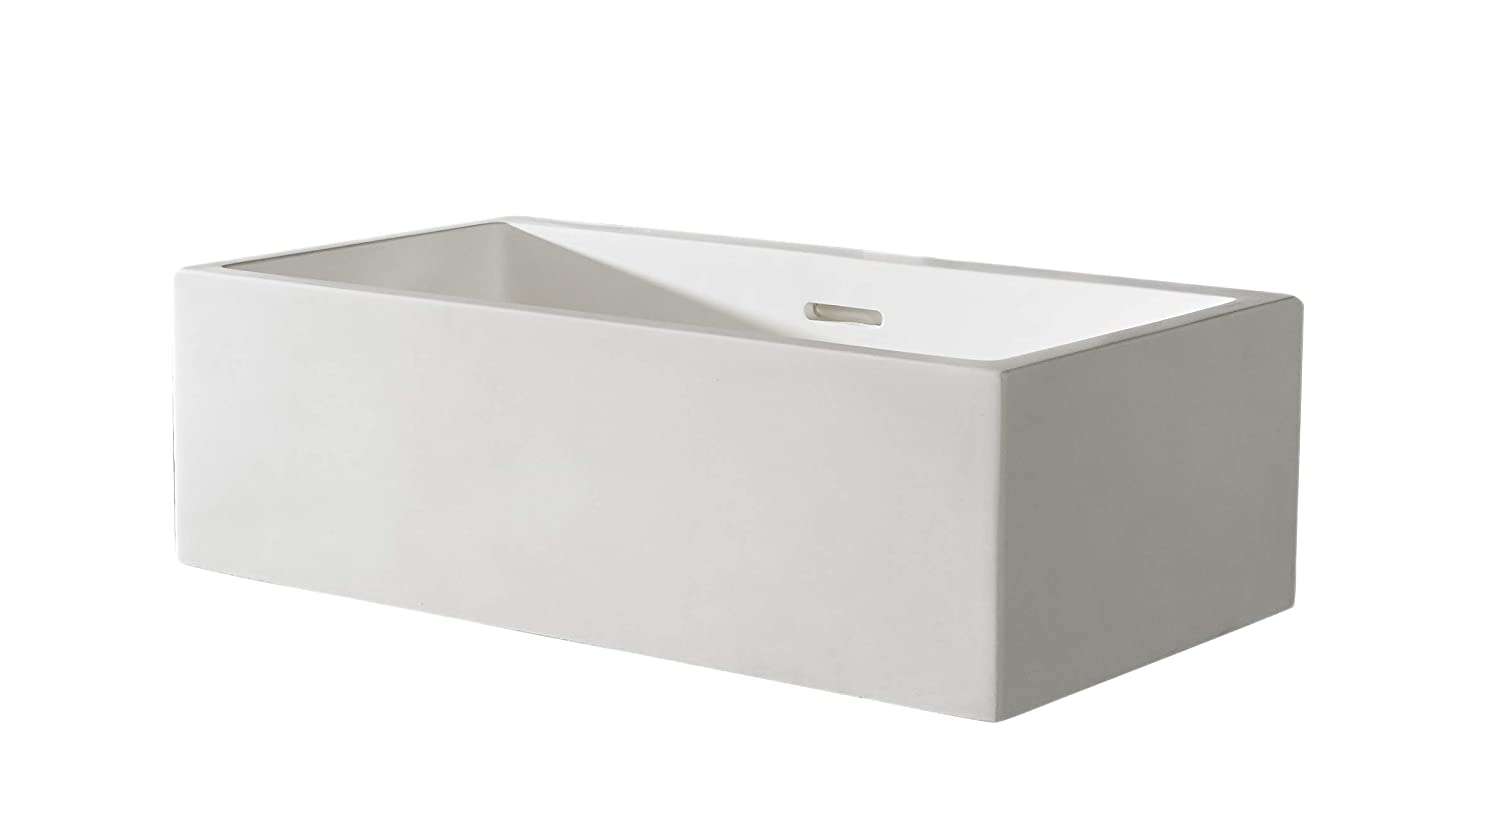 Clickbasin Pure White Solid Surface 45cm X 25cm Wall or Counter Mounted Basin